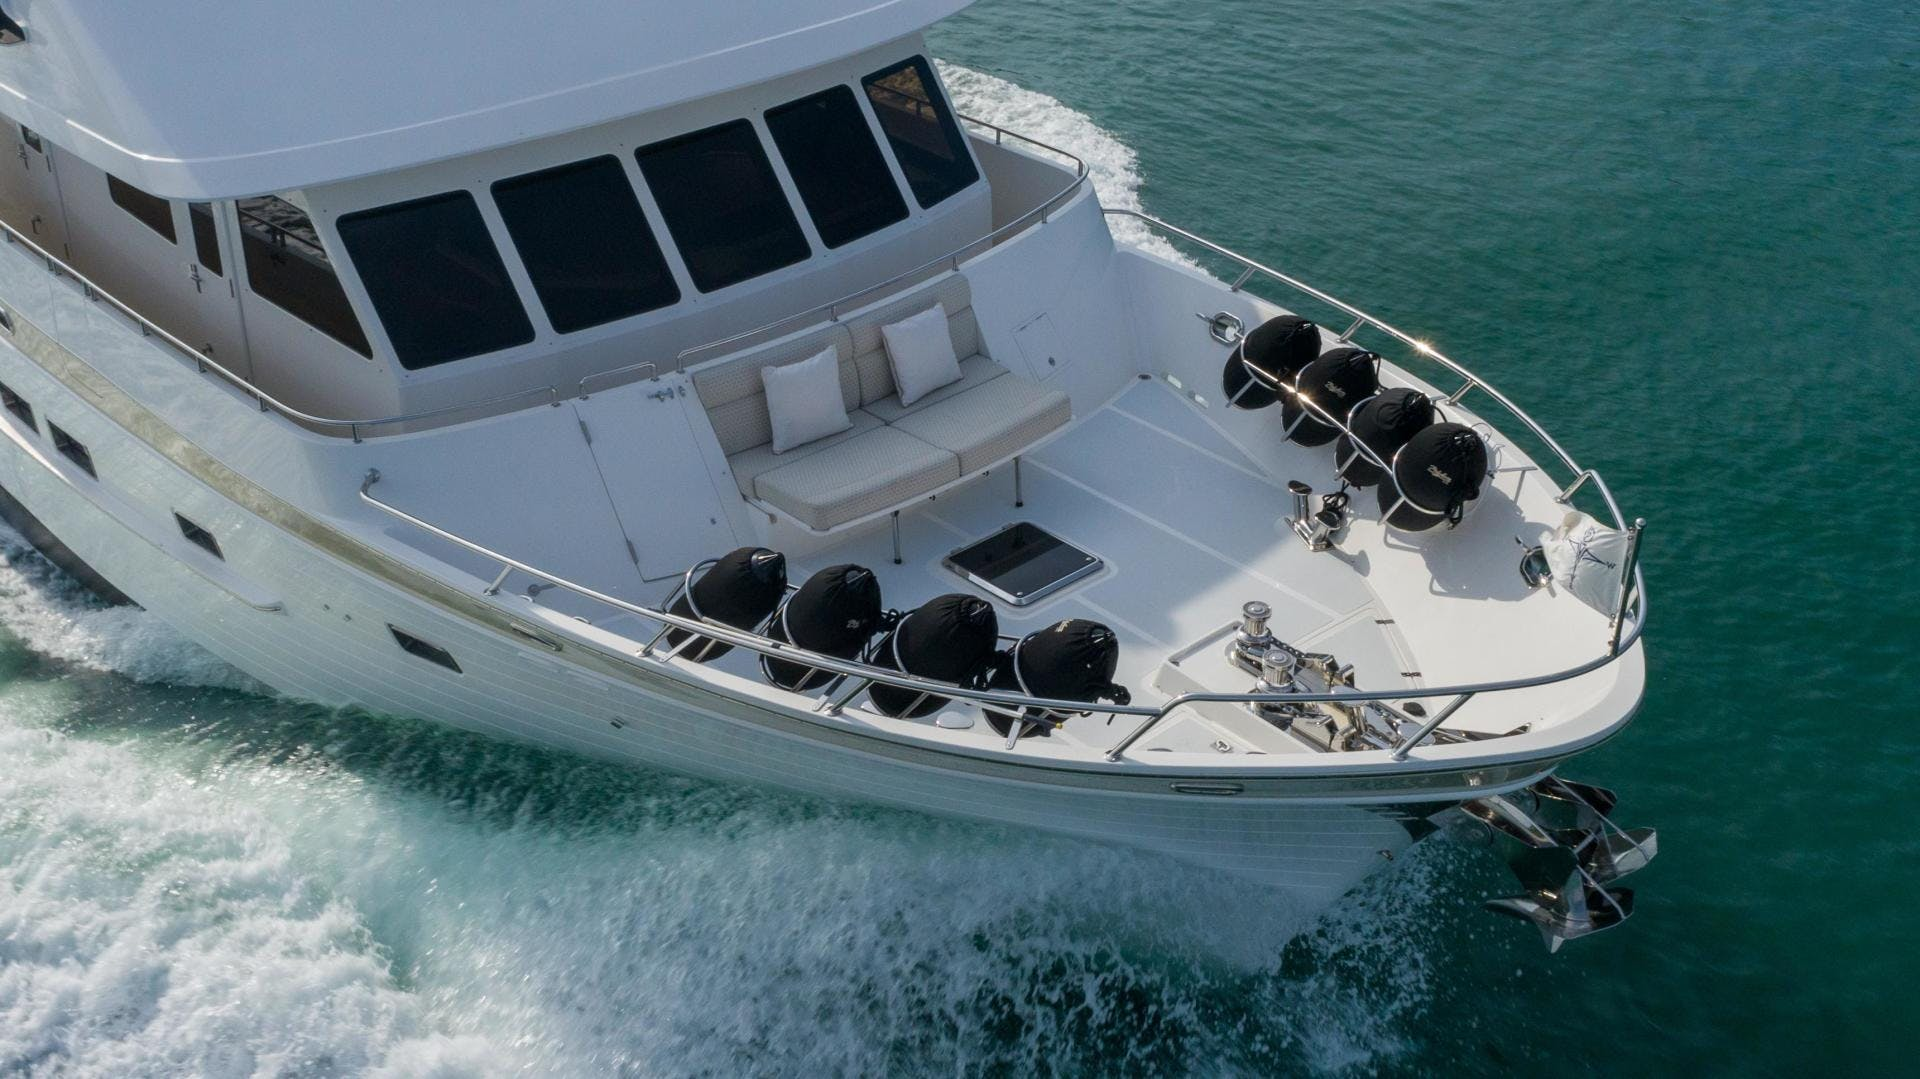 2017 Outer Reef Yachts 86' 860 DBMY Simon Says | Picture 1 of 109